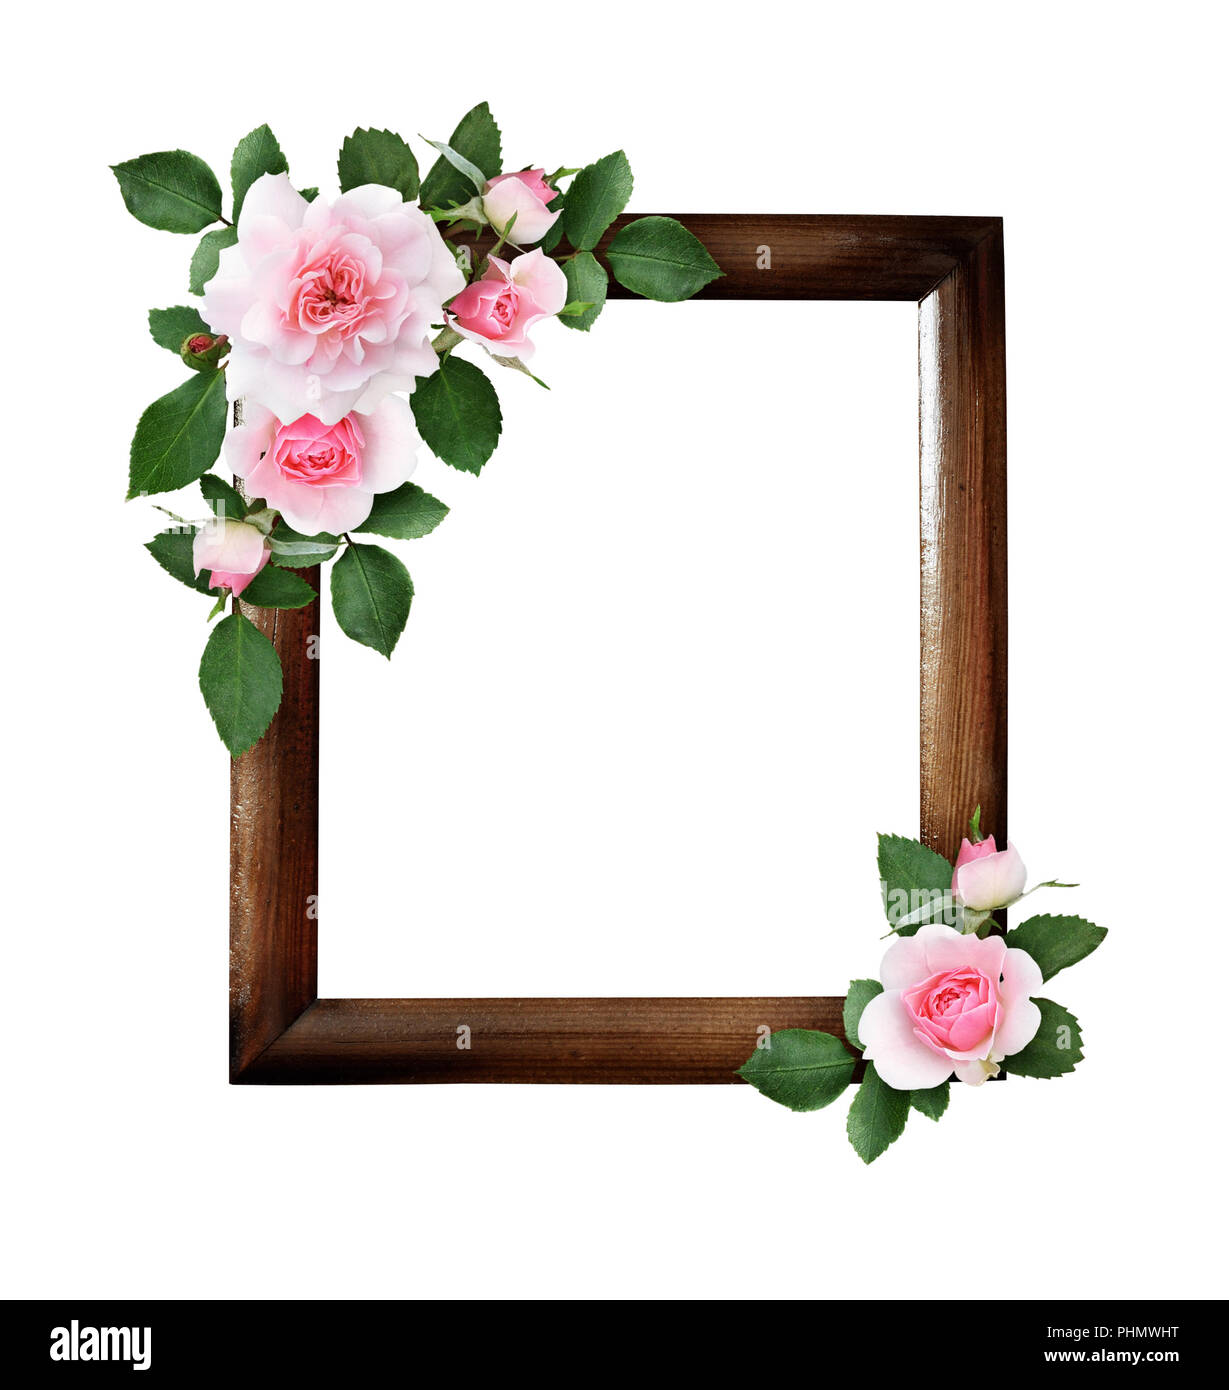 Pink rose flowers and green leaves in a corner floral arrangements pink rose flowers and green leaves in a corner floral arrangements on brown wooden frame isolated on white background mightylinksfo